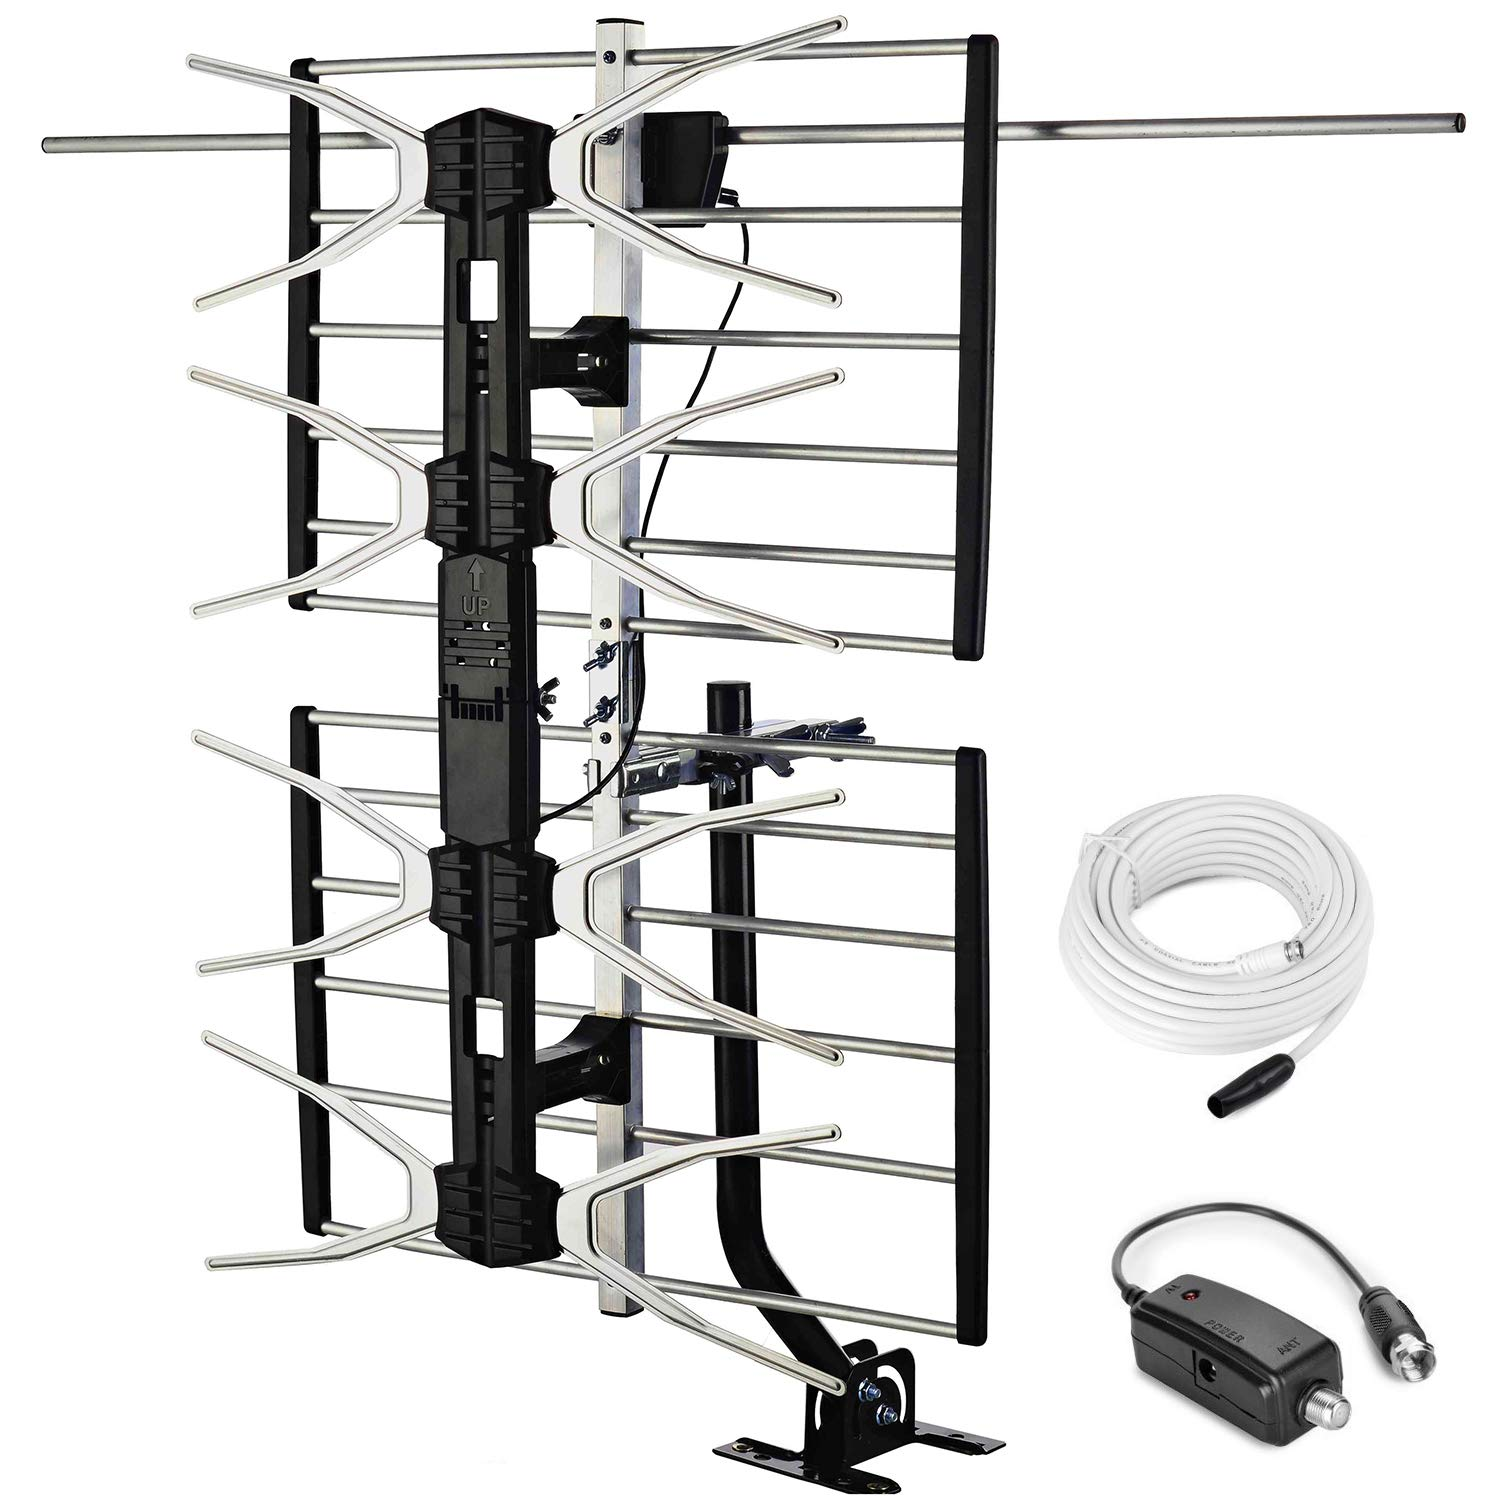 pingbingding Outdoor Digital HD TV Antenna with High Gain Amplifier 150 Mile Long Range for UHF/VHF, Mounting Pole, 40FT RG6 Coaxial Cable, Easy Installation by pingbingding